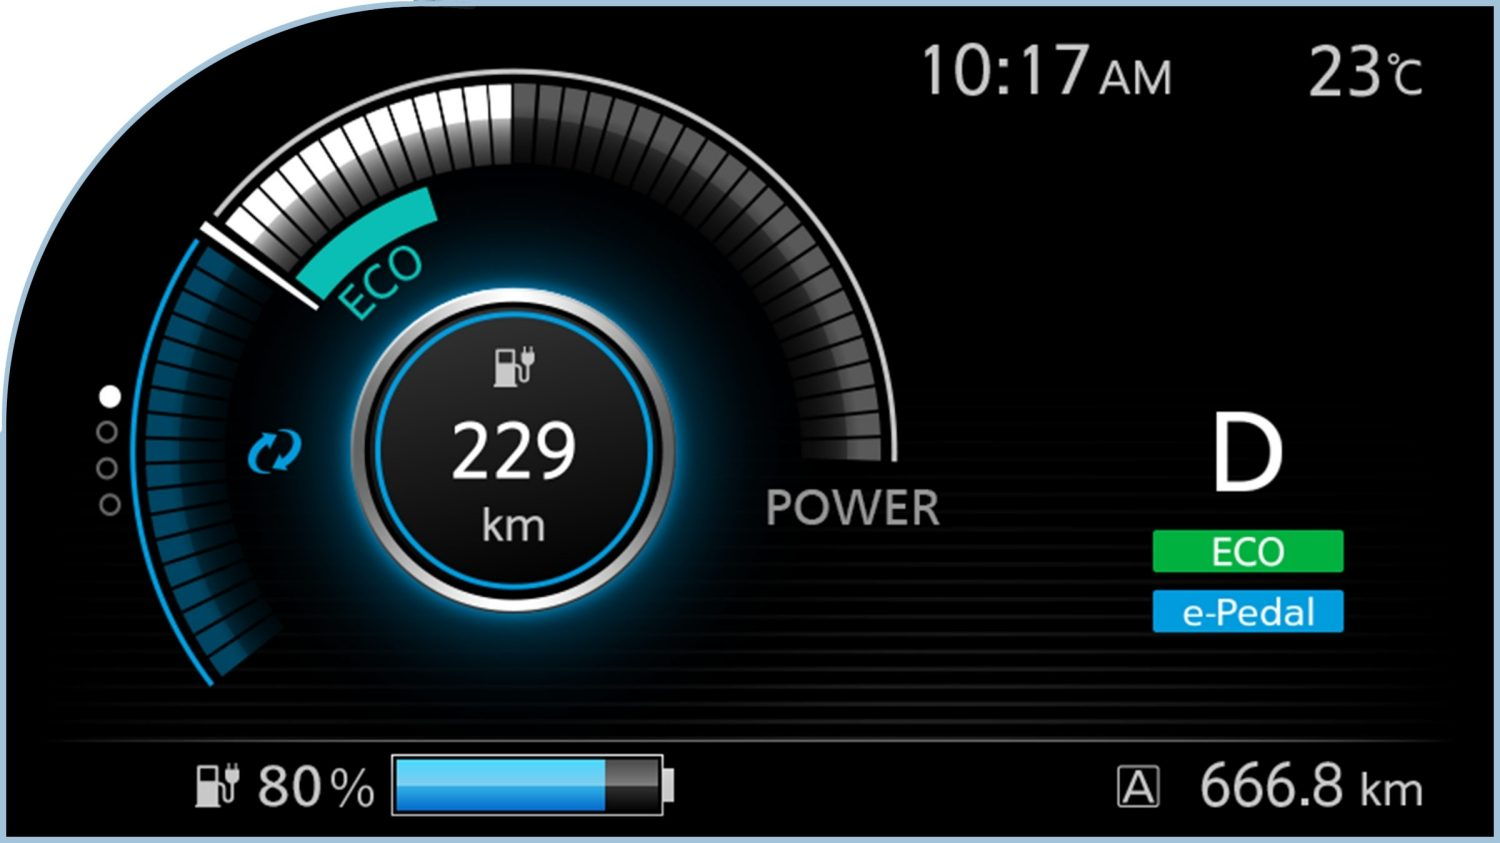 New Nissan LEAF digital information display showing power meter